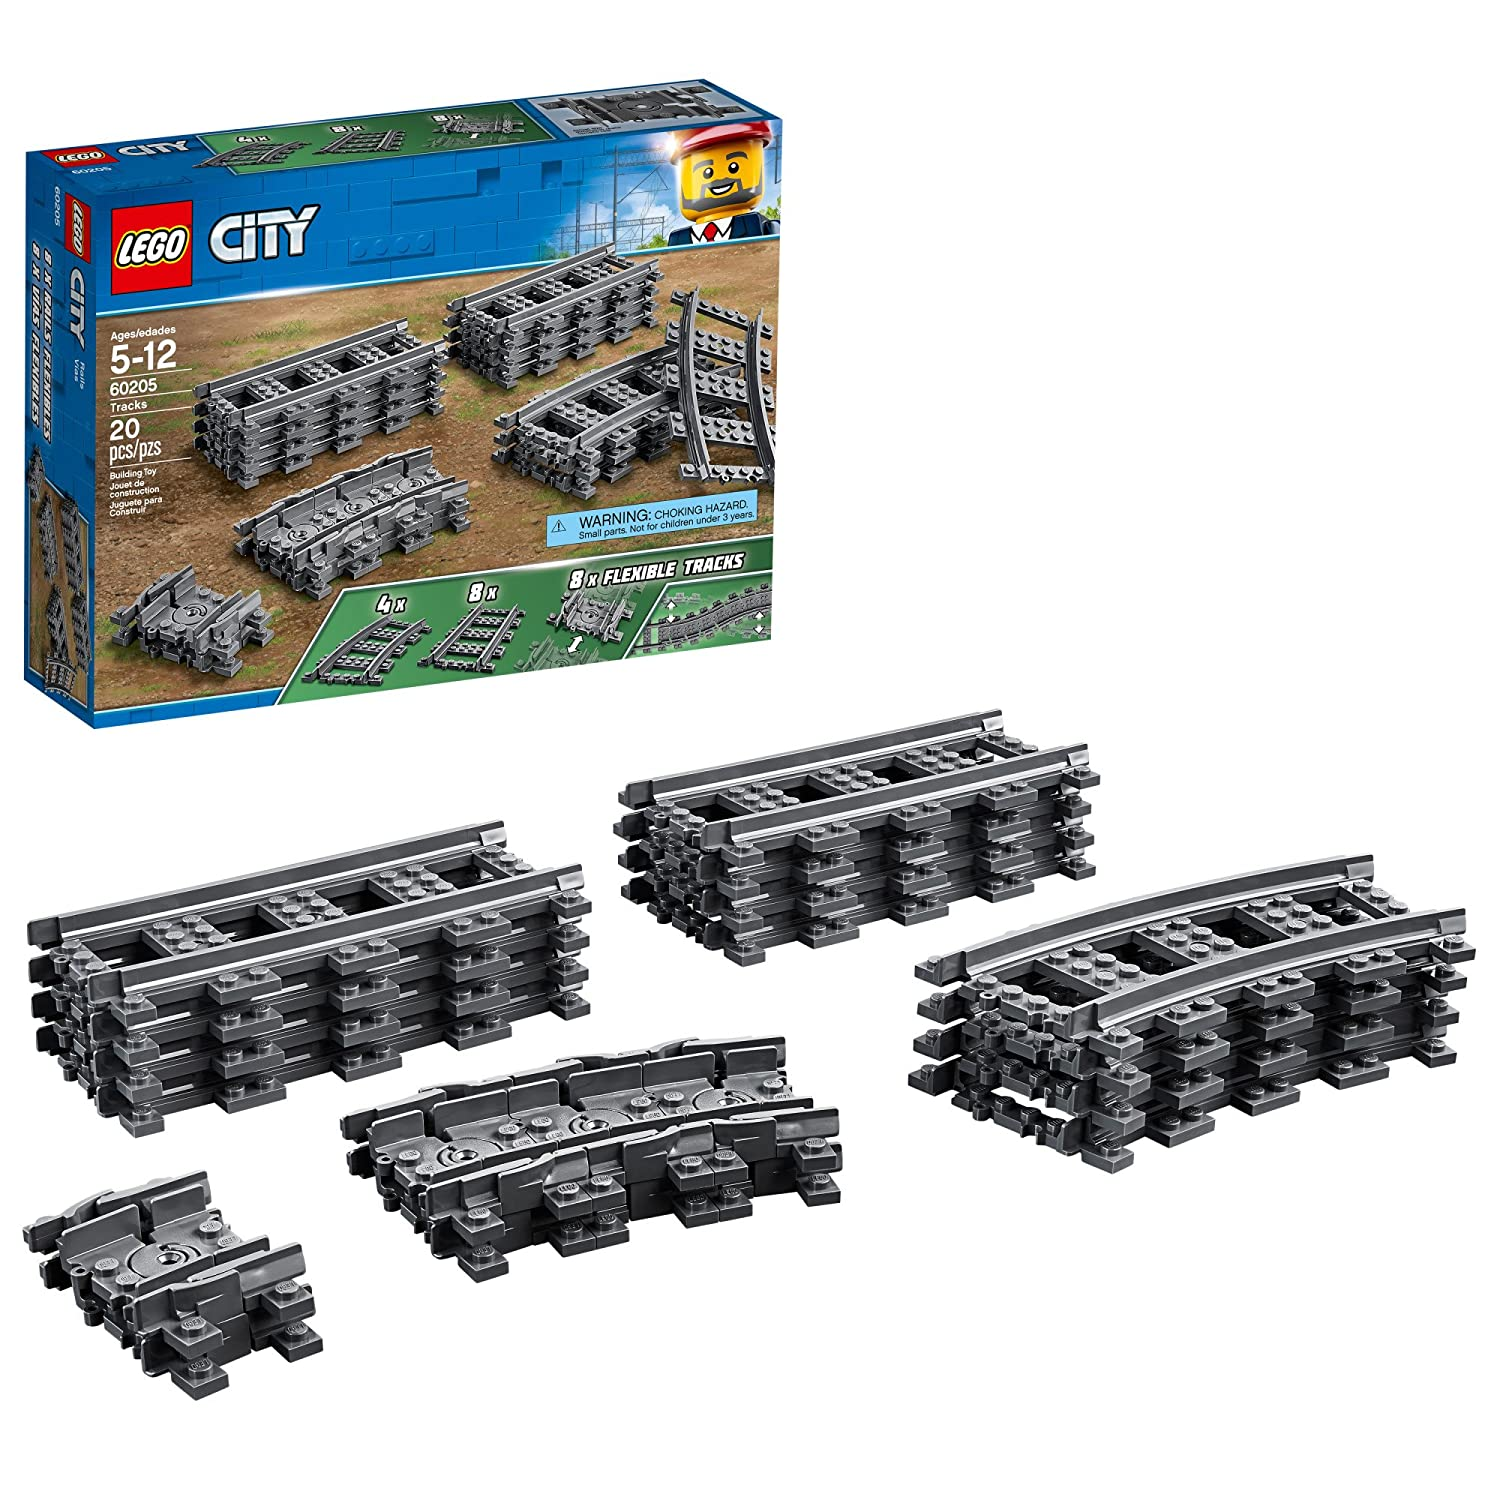 LEGO City Tracks 60205 Building Kit (20 Piece) 6230584